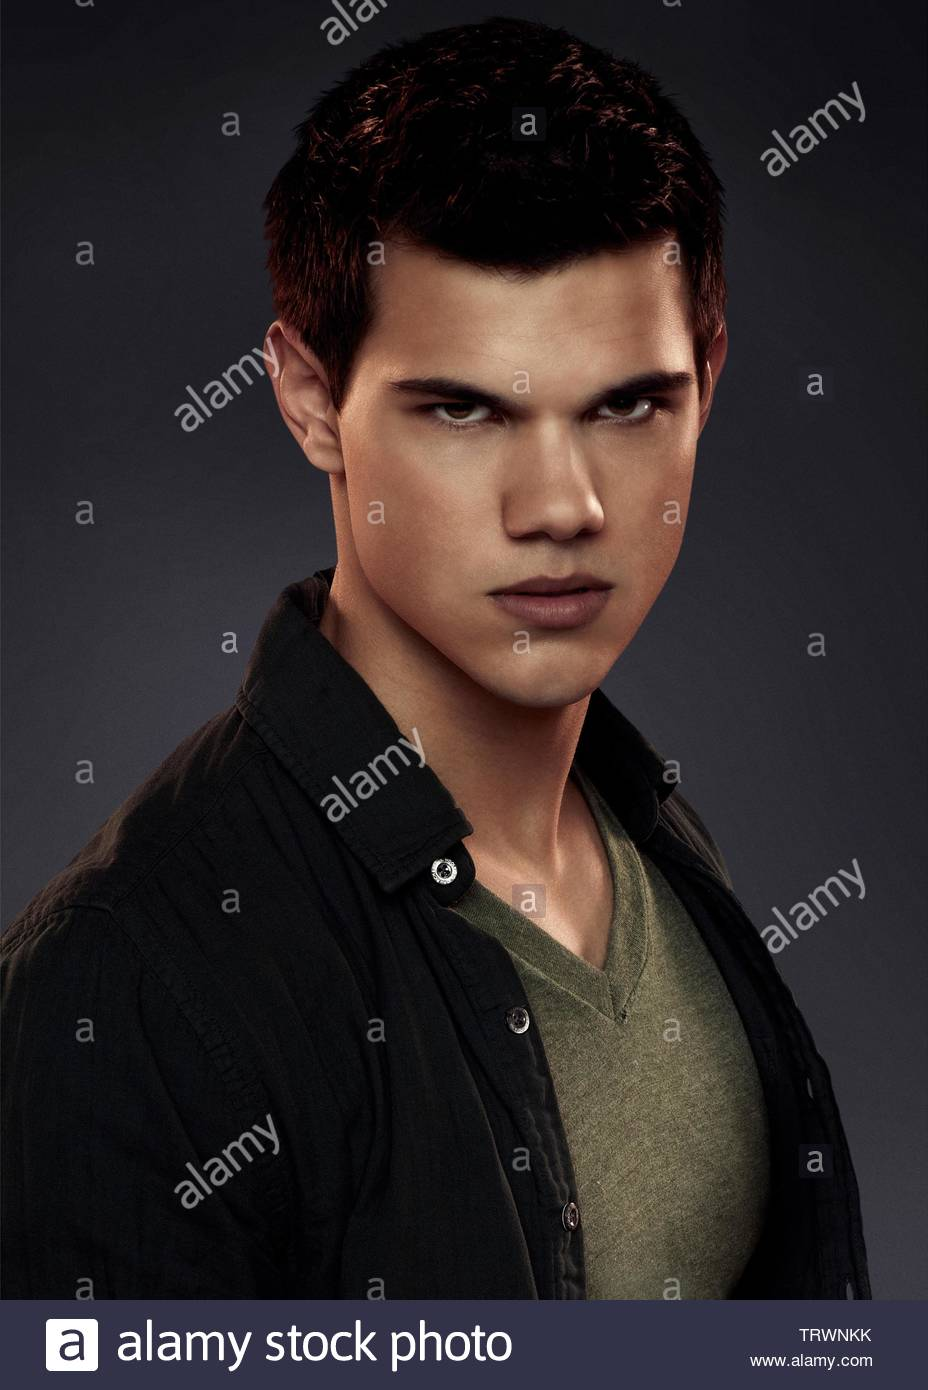 Taylor Lautner In Twilight Saga The Breaking Dawn Part 2 2012 Copyright Editorial Use Only No